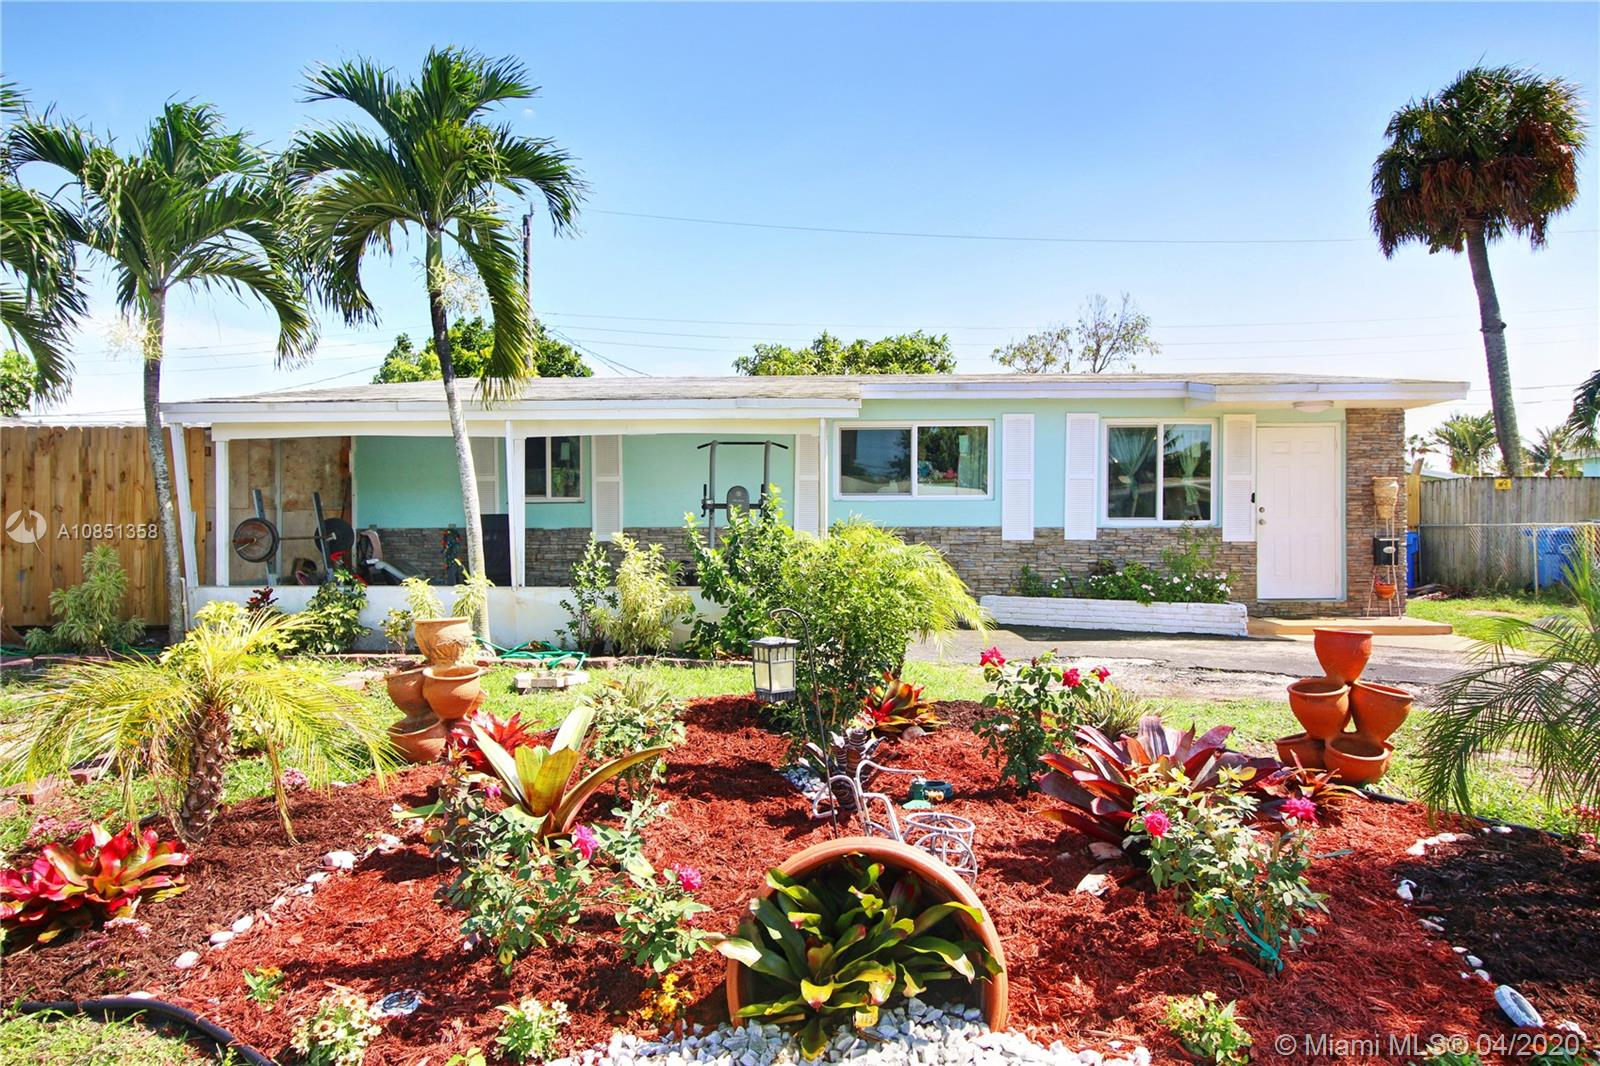 THIS BEAUTIFUL HOME IS LOCATED IN HIGHLY SOUGHT OAKLAND PARK. ALL NEW PLUMBING, HURRICANE IMPACT WINDOWS THROUGHOUT THE HOME. PROPERTY HAS ALL NEW STAINLESS STEEL APPLIANCES, FRESHLY PAINTED, AND NATURAL GAS WHICH IS PERFECT FOR HURRICANES. GORGEOUS MANGO TREES WITH A OPEN PATIO. NEARBY SHOPPING PLAZA, NEARBY SCHOOLS, AND I-95. DON'T MISS OUT. **WON'T LAST!! CONTACT ME TO SCHEDULE YOUR SHOWING.